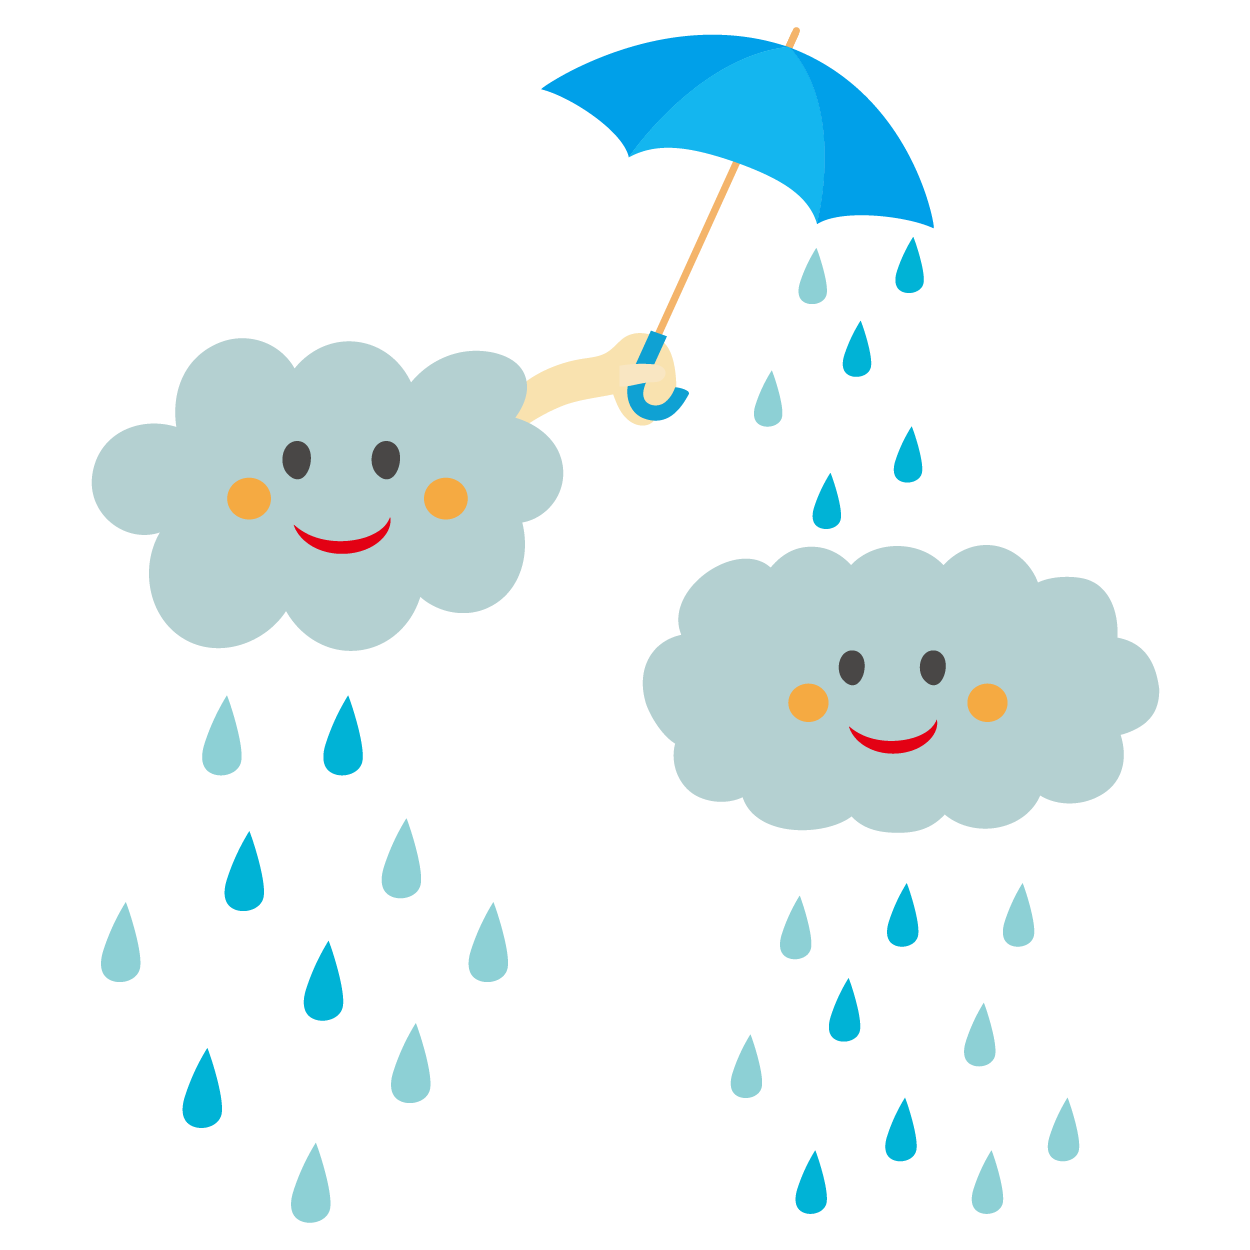 Rain Illustration Image Clip art Portable Network Graphics.